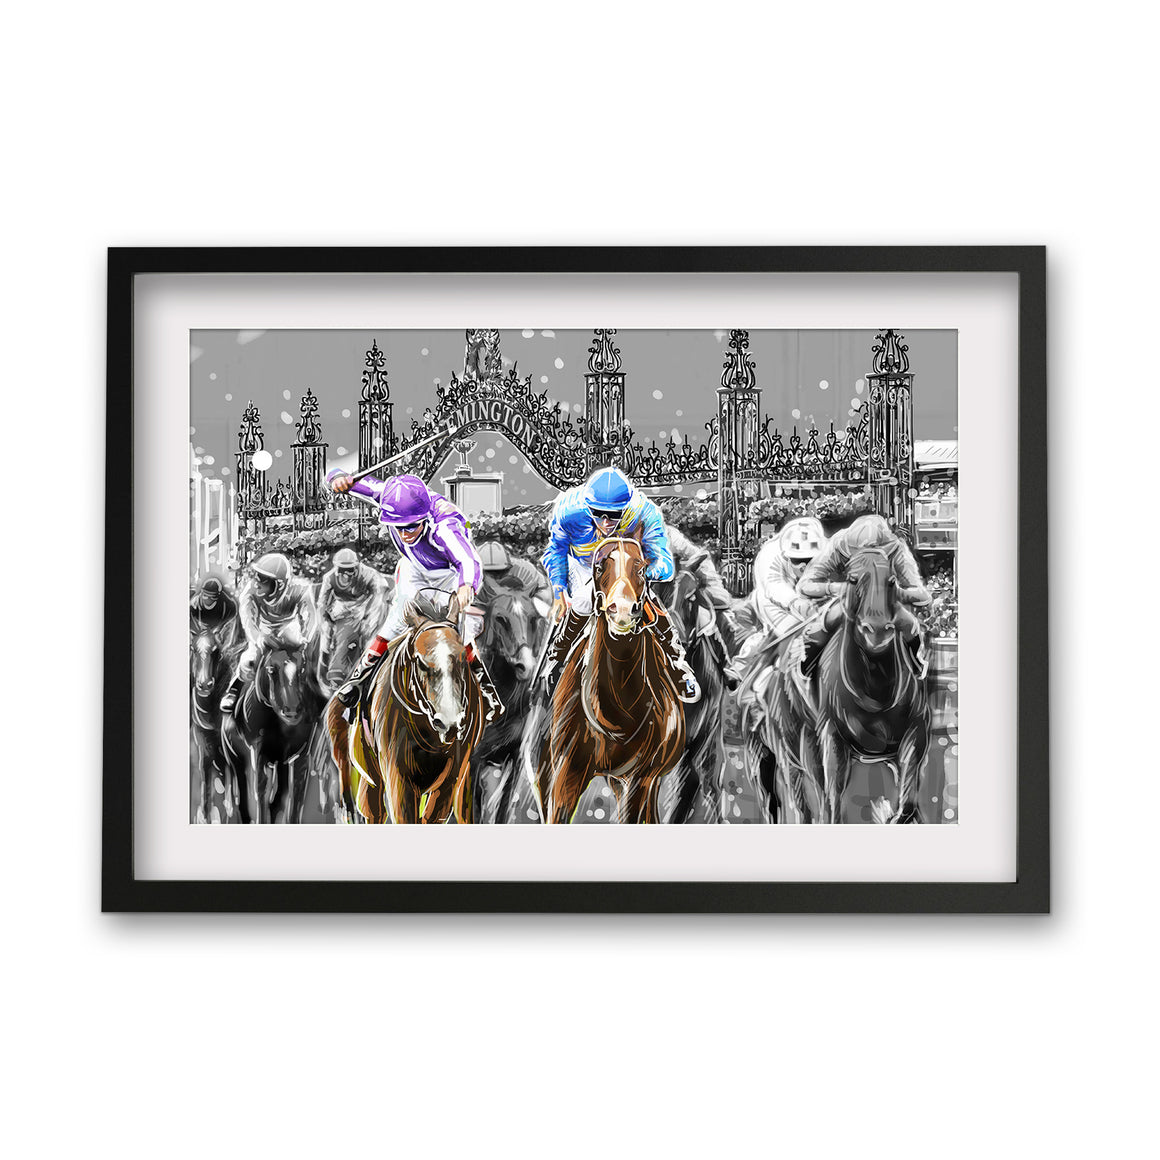 Print (Iconic) - Melbourne Flemington Race Landscape